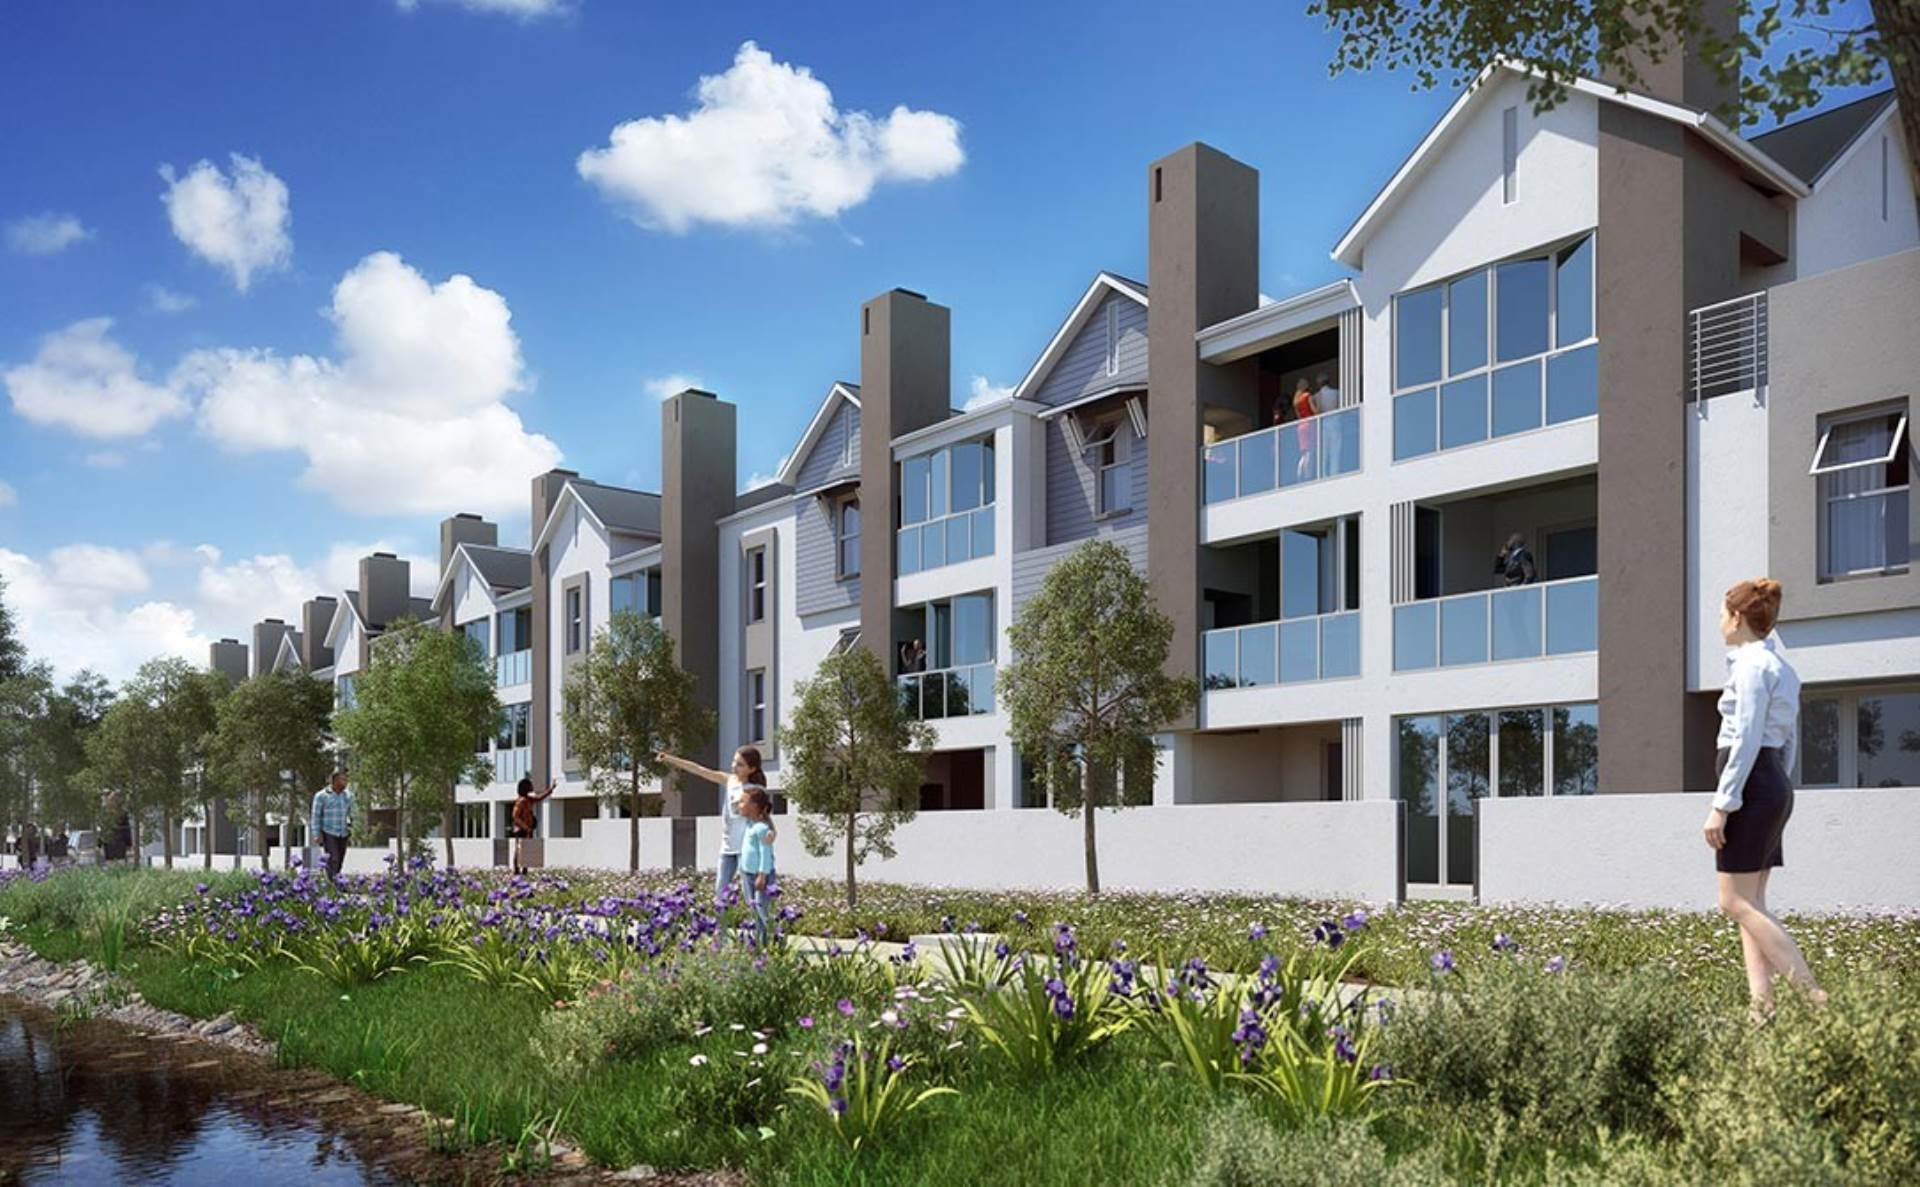 2 BedroomApartment For Sale In Sitari Country Estate